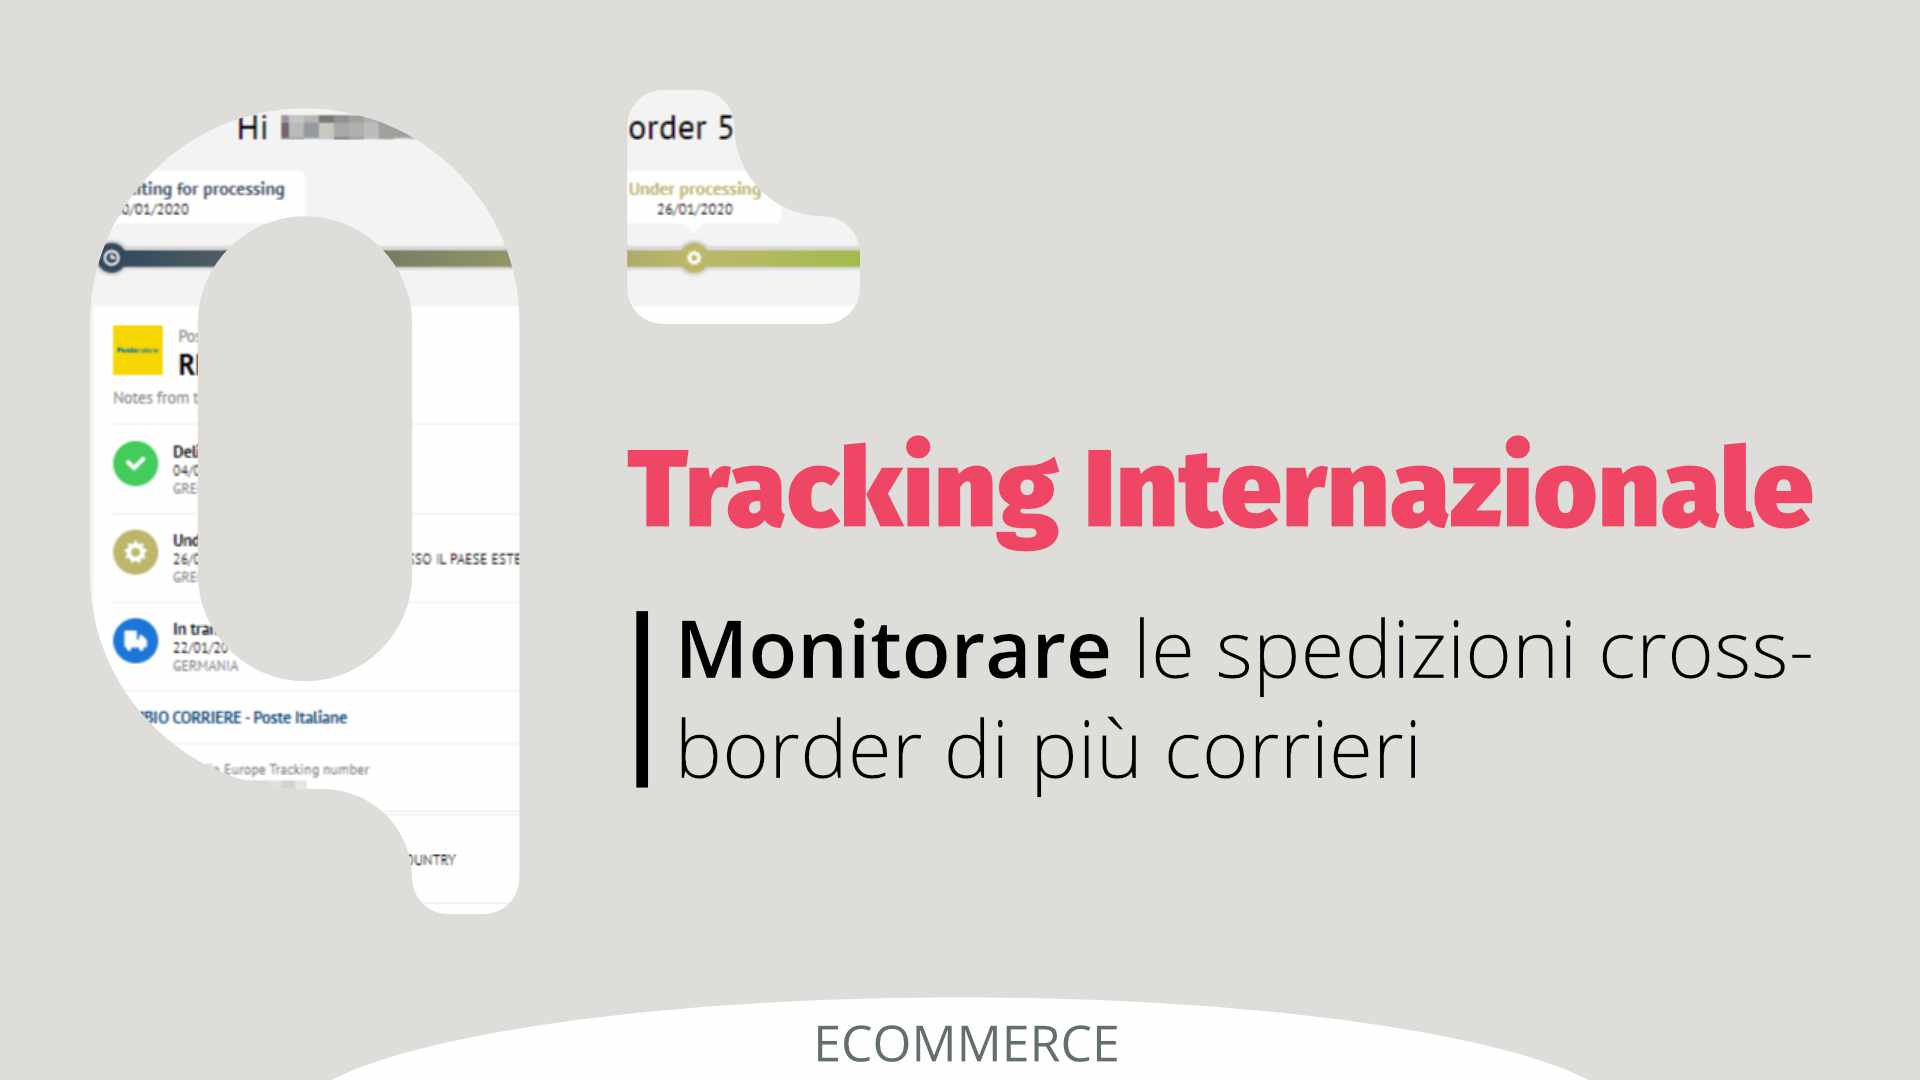 Tracking Internazionale